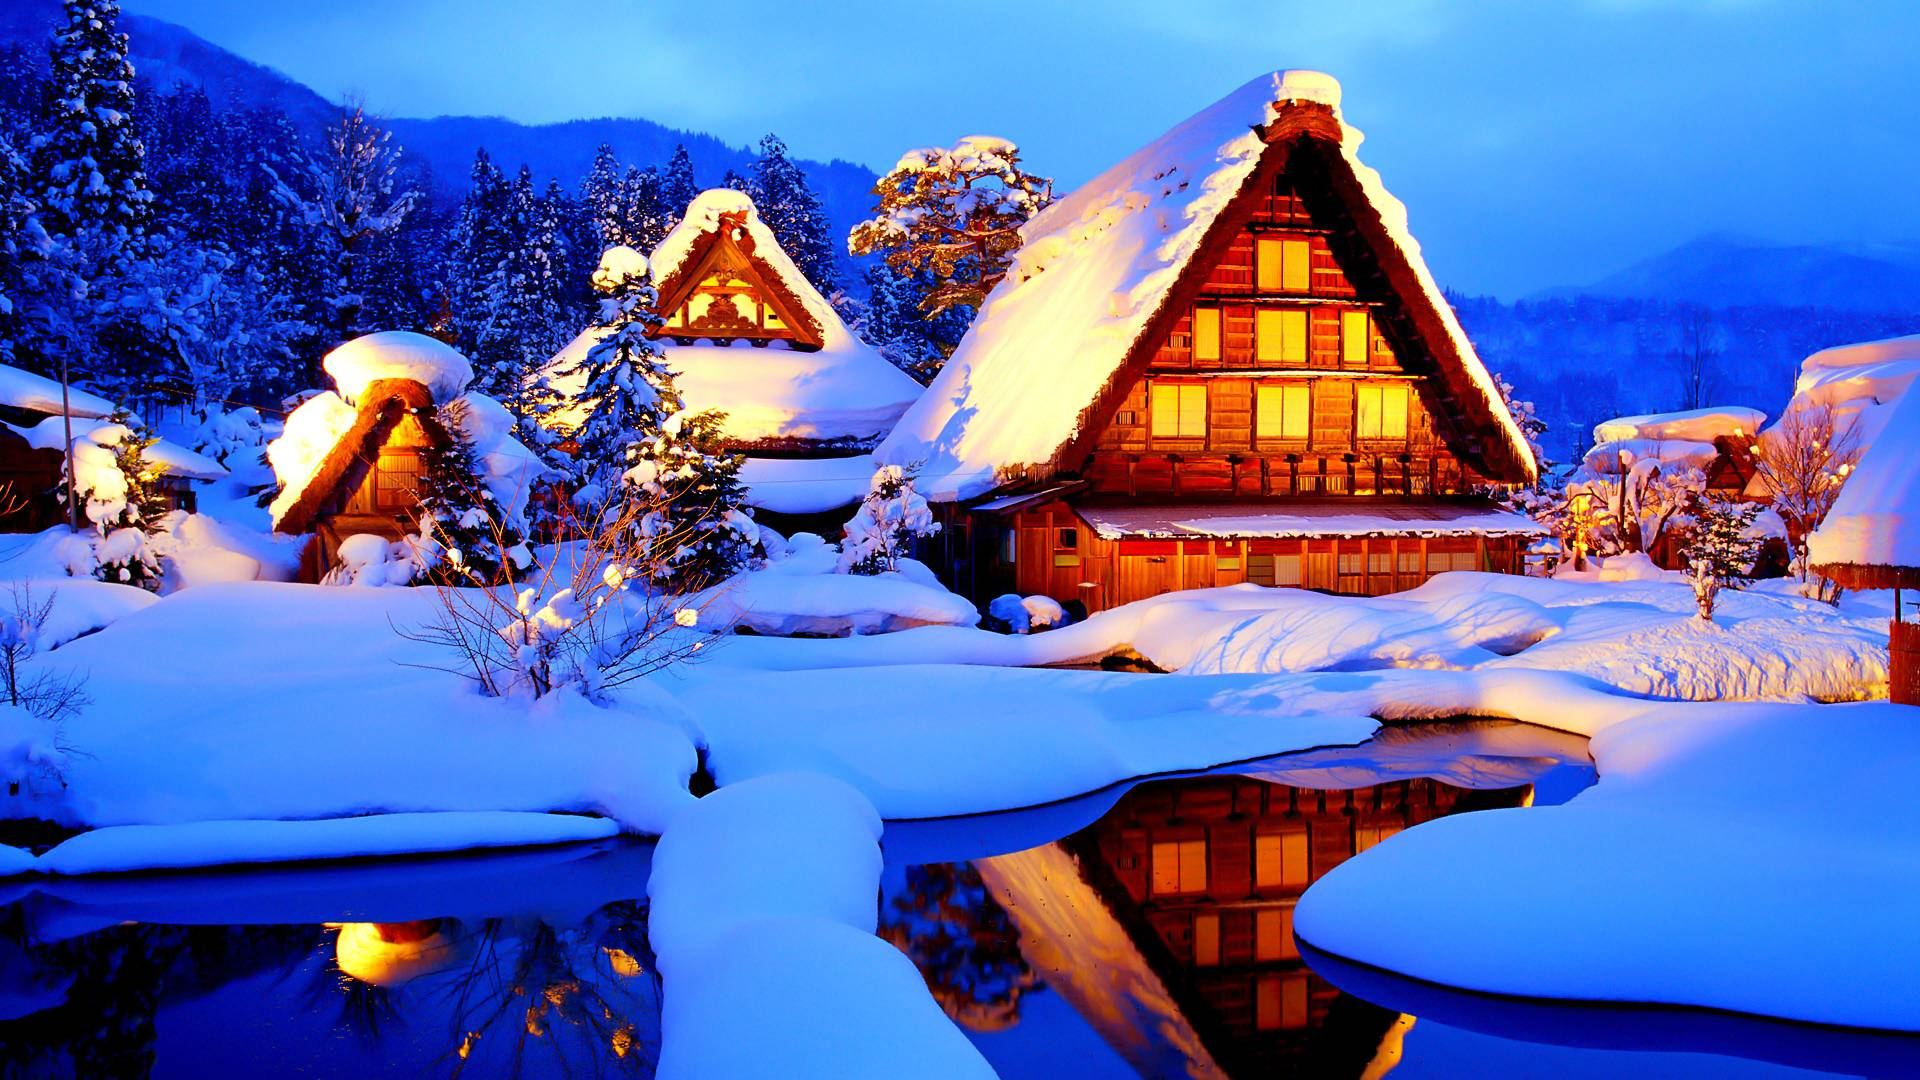 Winter cabin wallpapers wallpaper cave for House wallpaper 2017